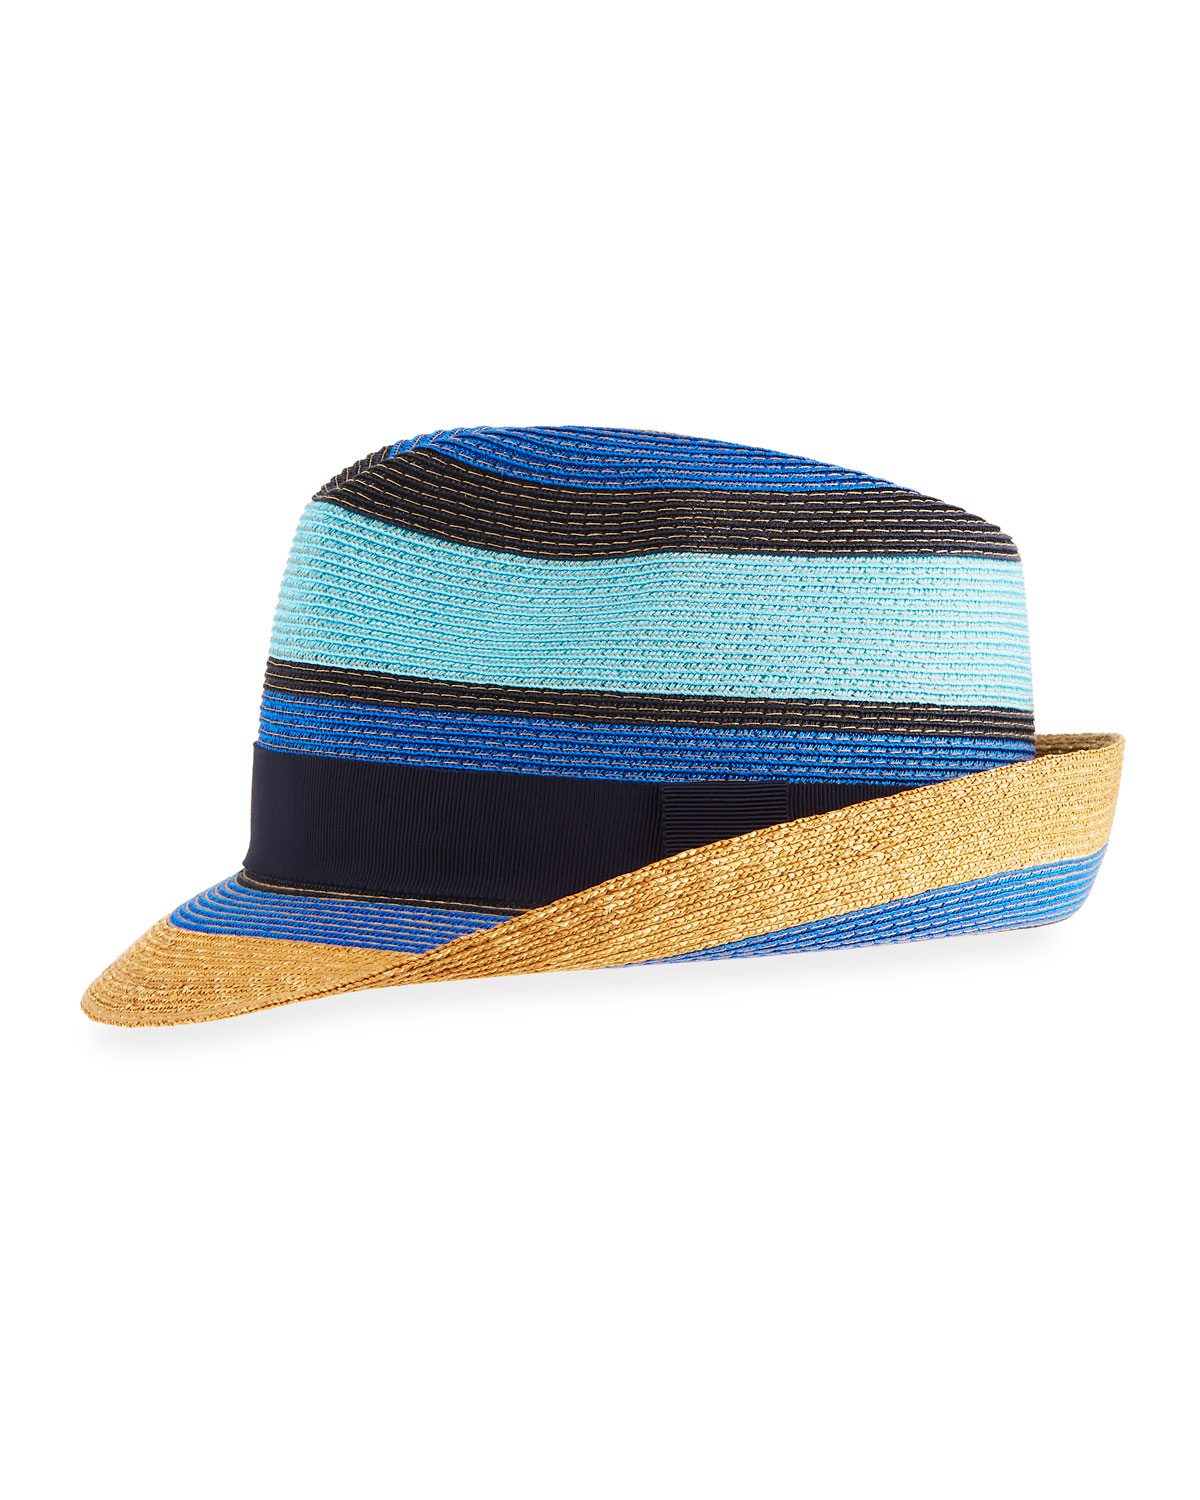 Etro Tricolor Straw Fedora Hat  26ff76d64634